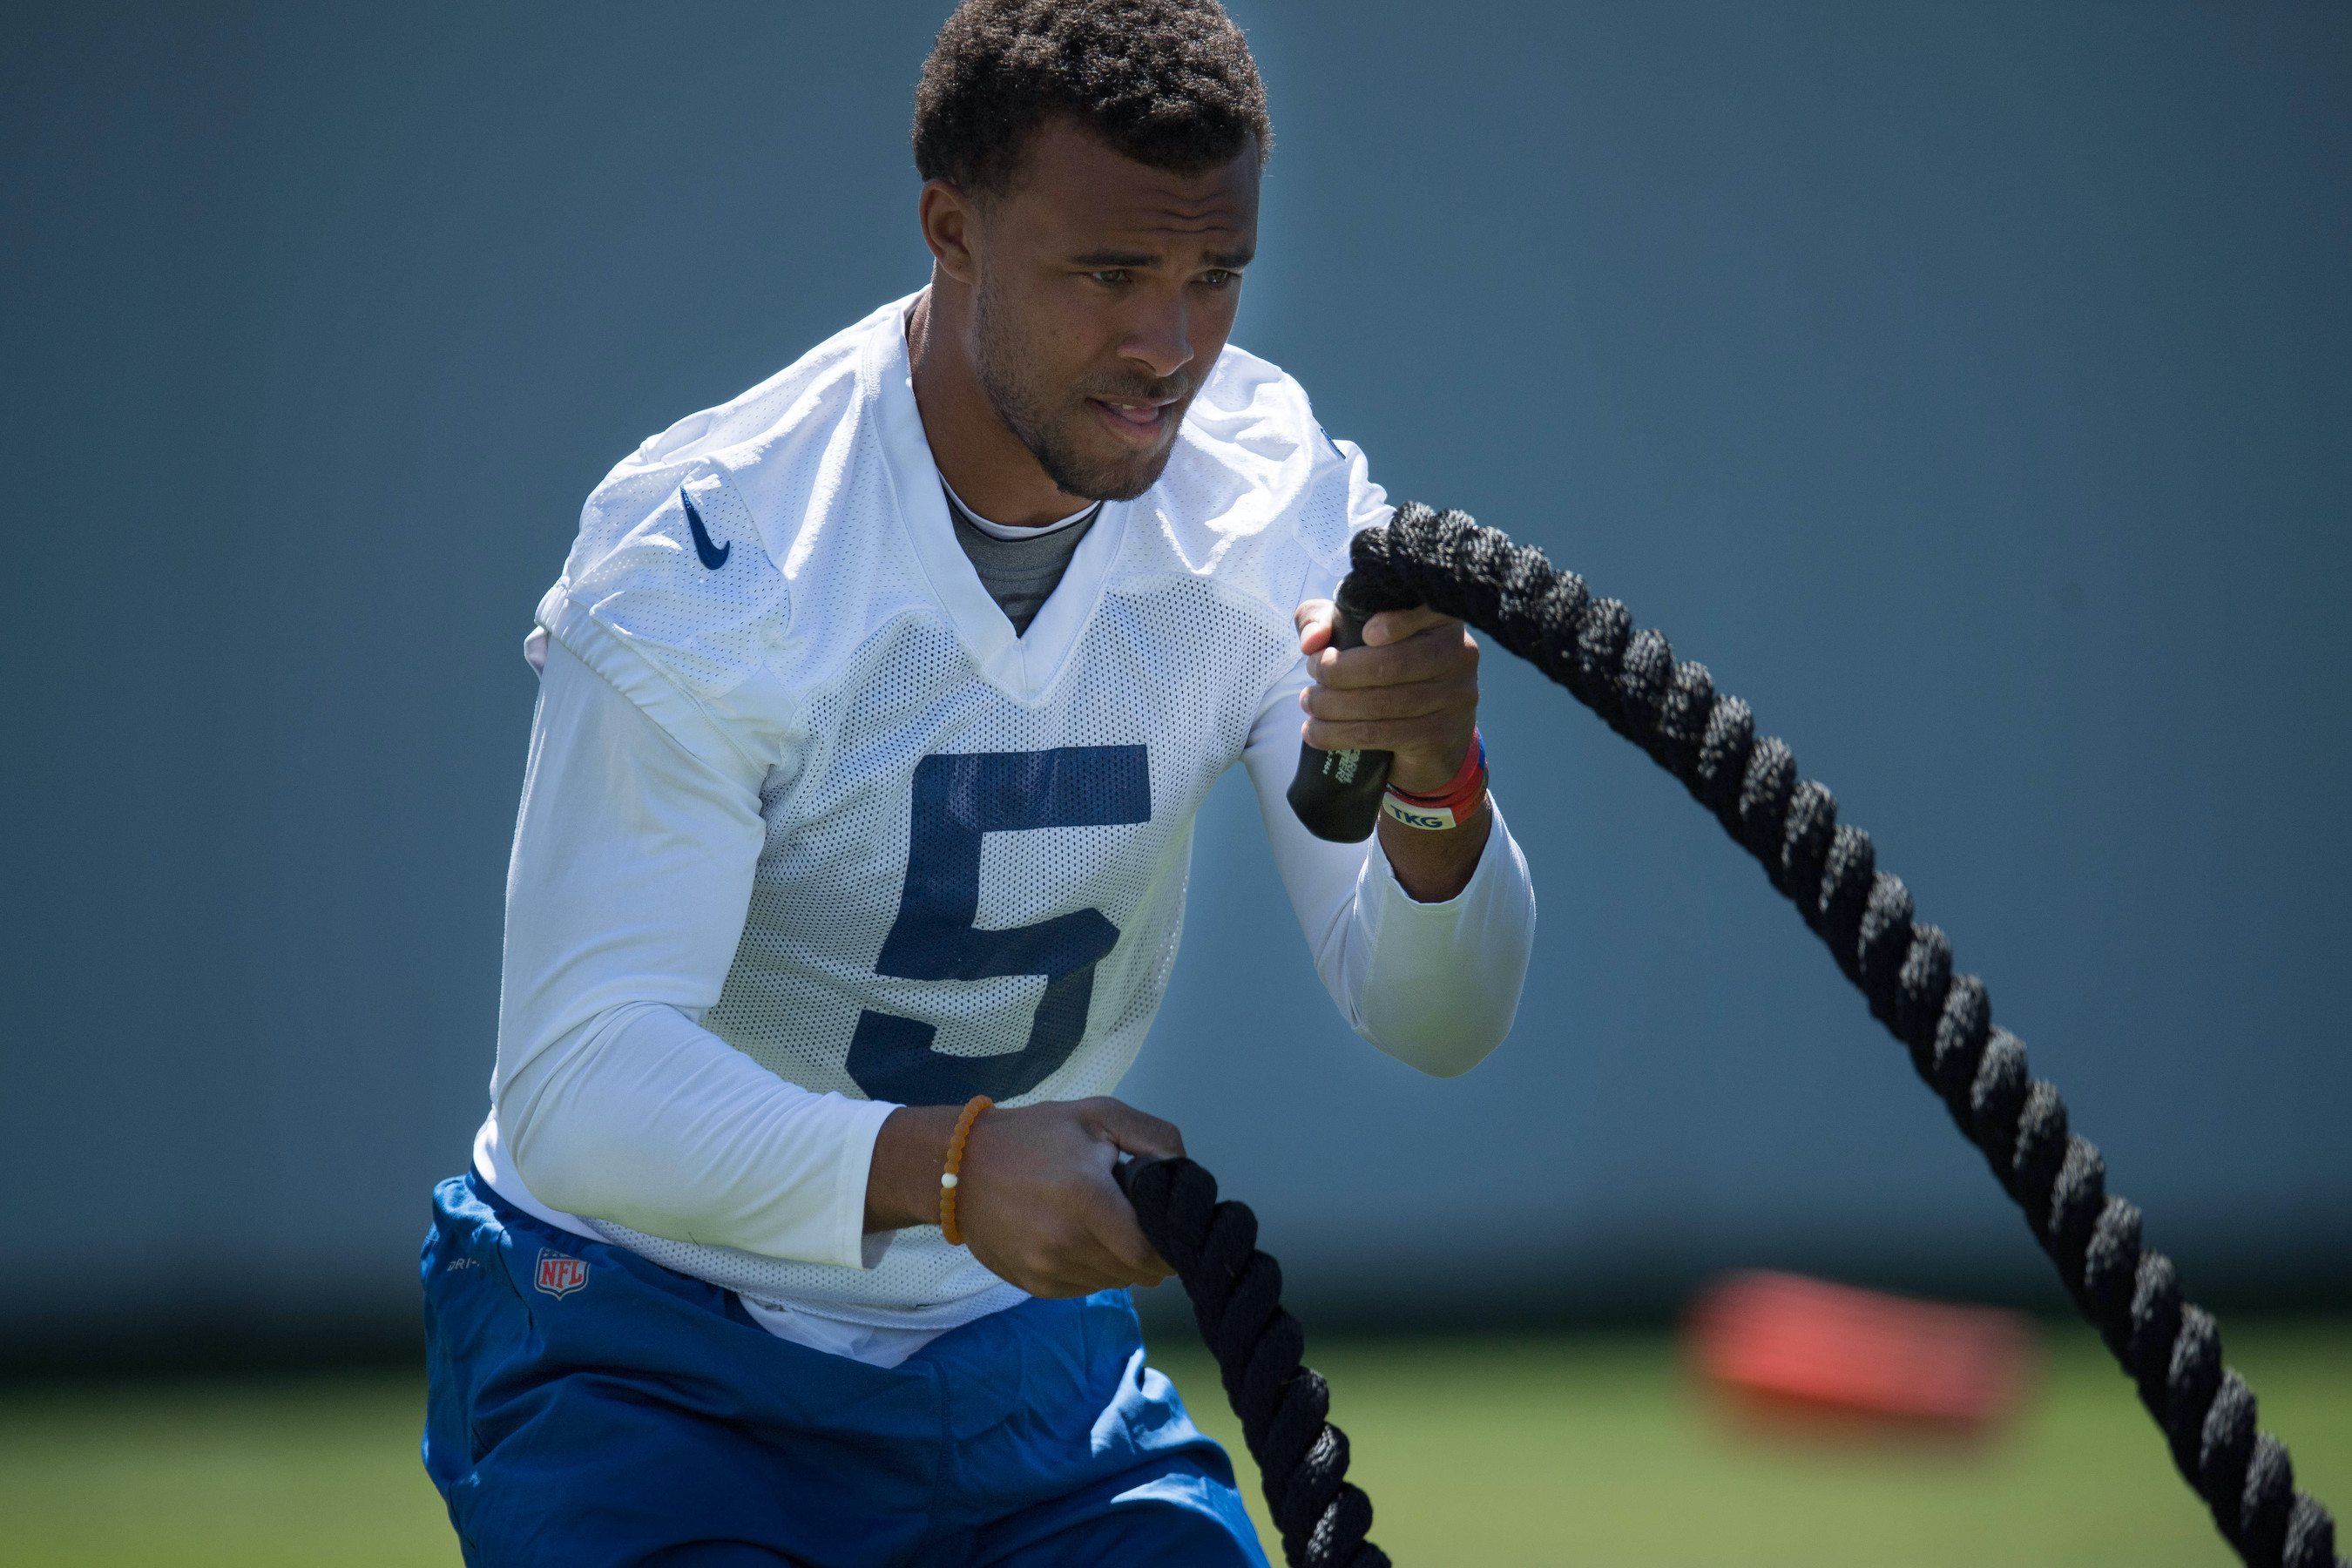 Colts wide receiver Trey Griffey works out on the sidelines